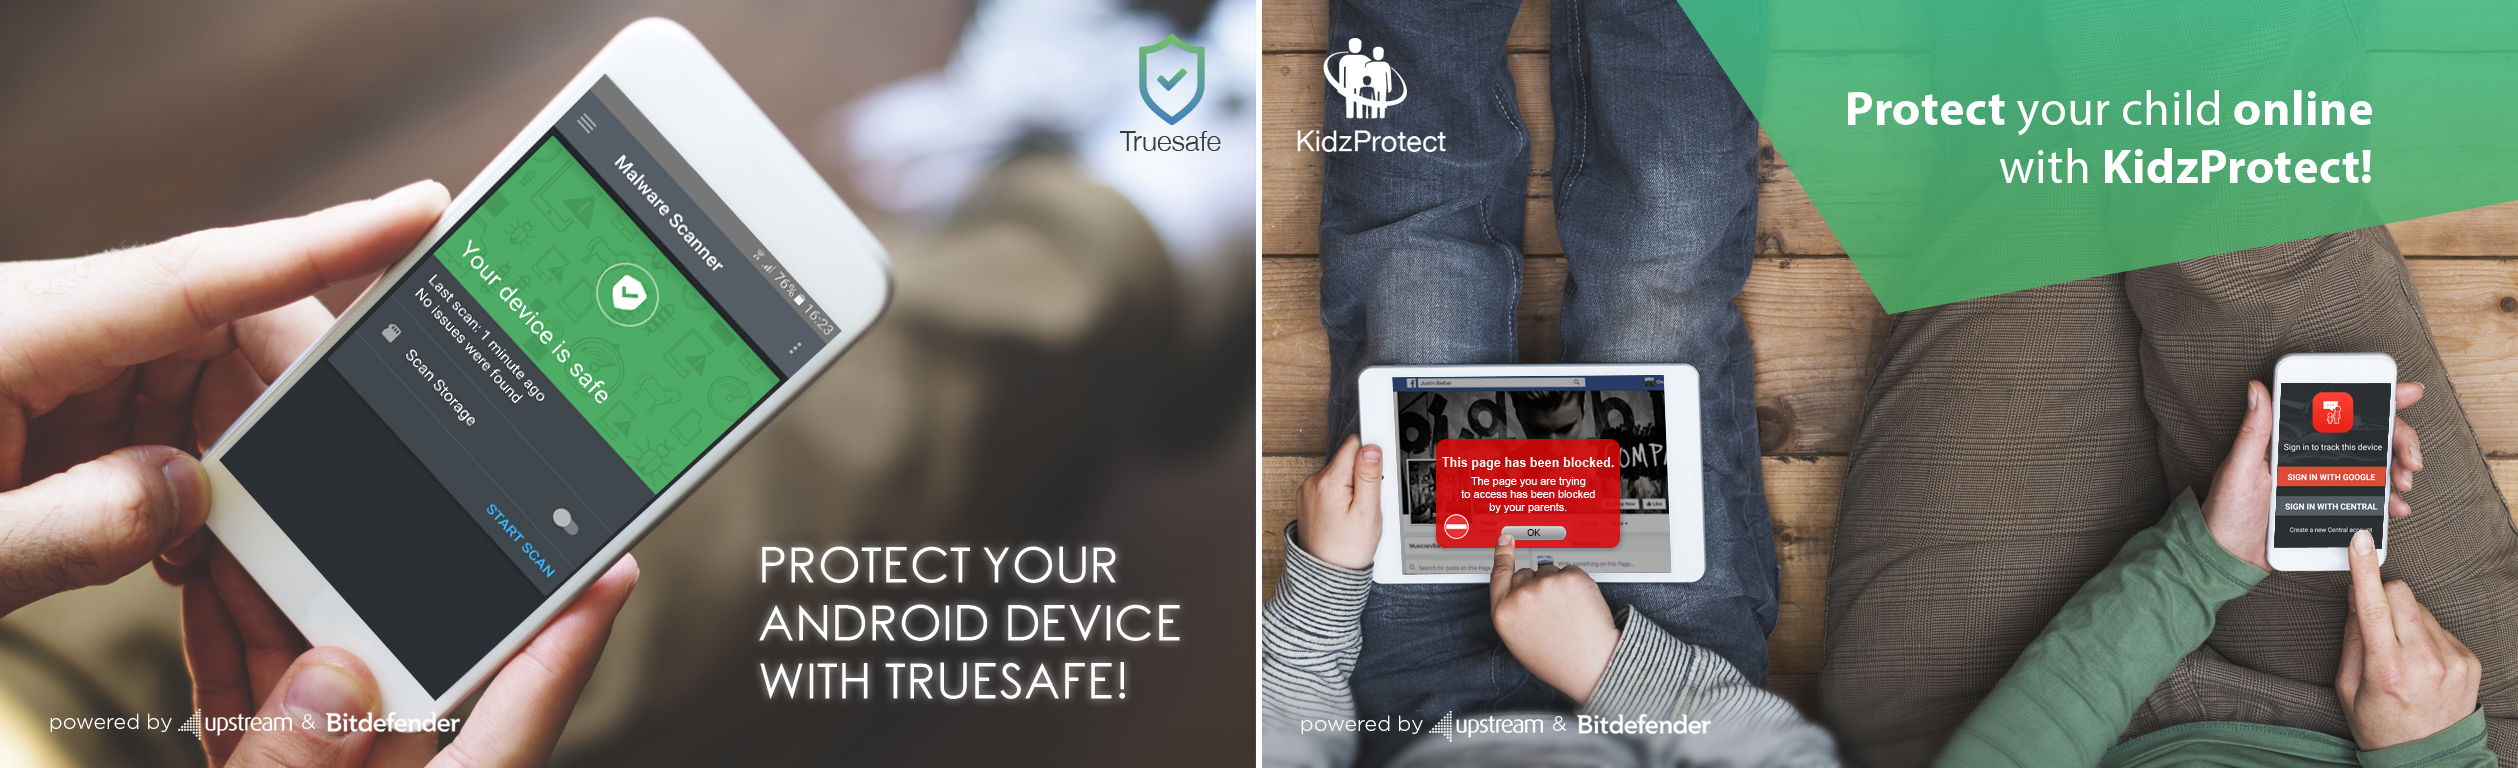 Emerging market consumers can now leverage Truesafe and KidzProtect to stay safe online (Photo: Business Wire)